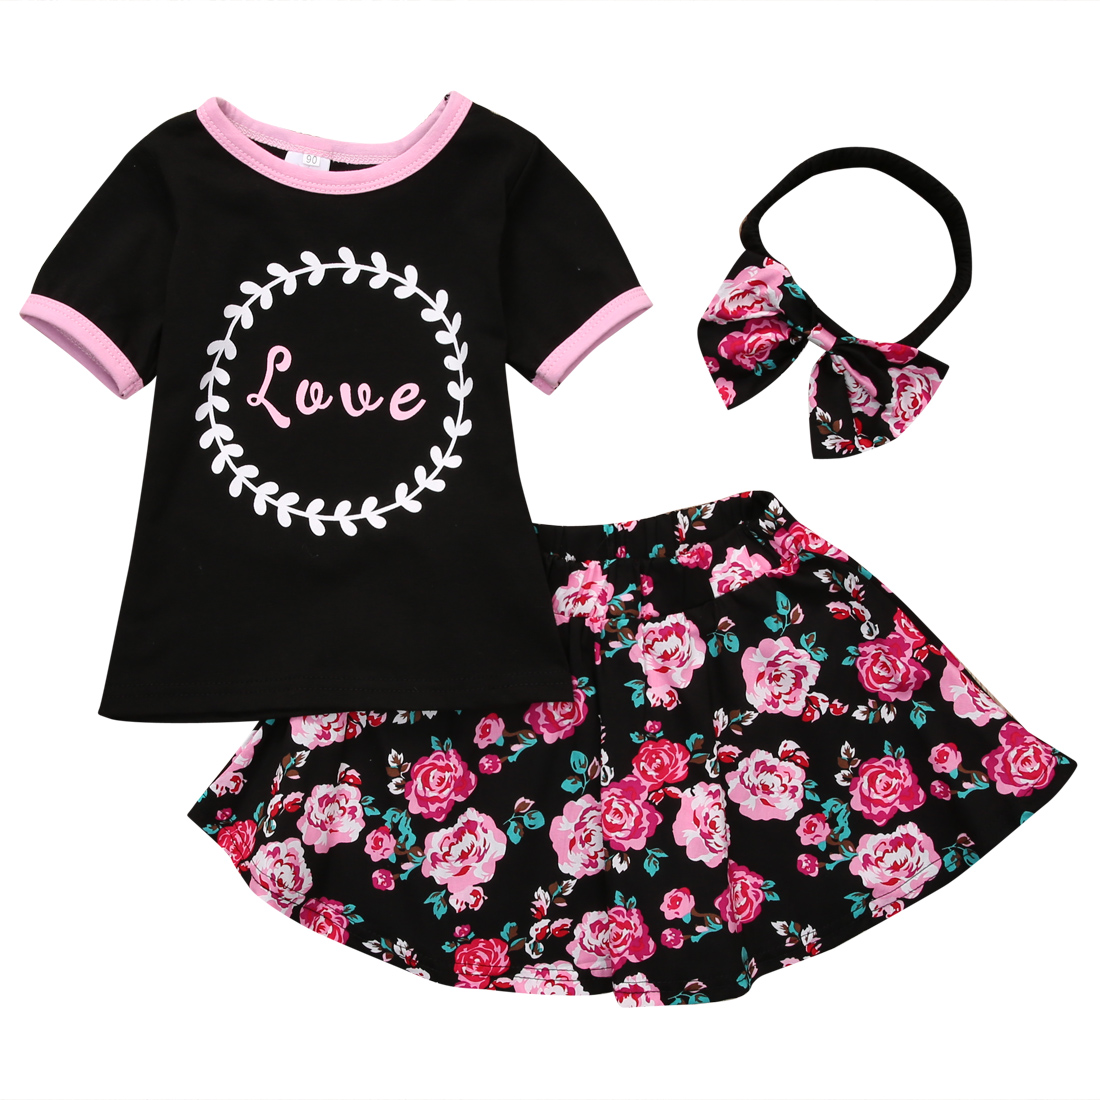 2017 New Cute Baby Girl Clothes Summer Floral Kids Clothing Set Love Print T-shirt Tops +Flower Skirt+Headband 3PCS Outfits 1-6Y clothing set kids baby girl short sleeve t shirt tutu floral skirt set summer outfits